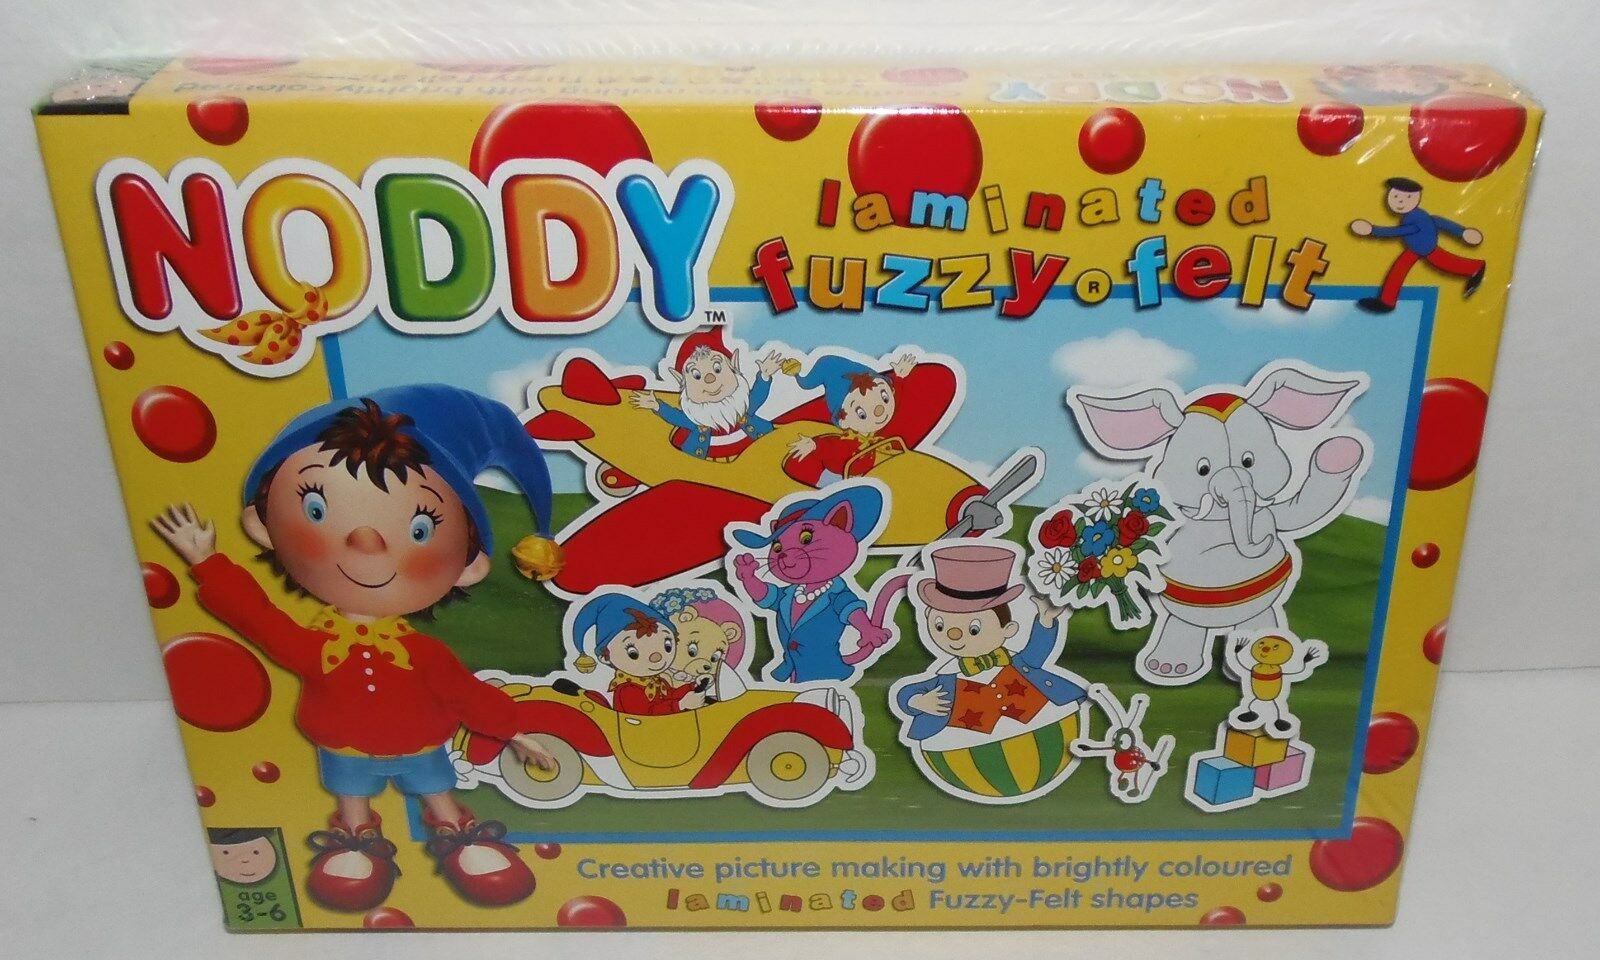 new noddy in toyland laminated fuzzy felt picture making